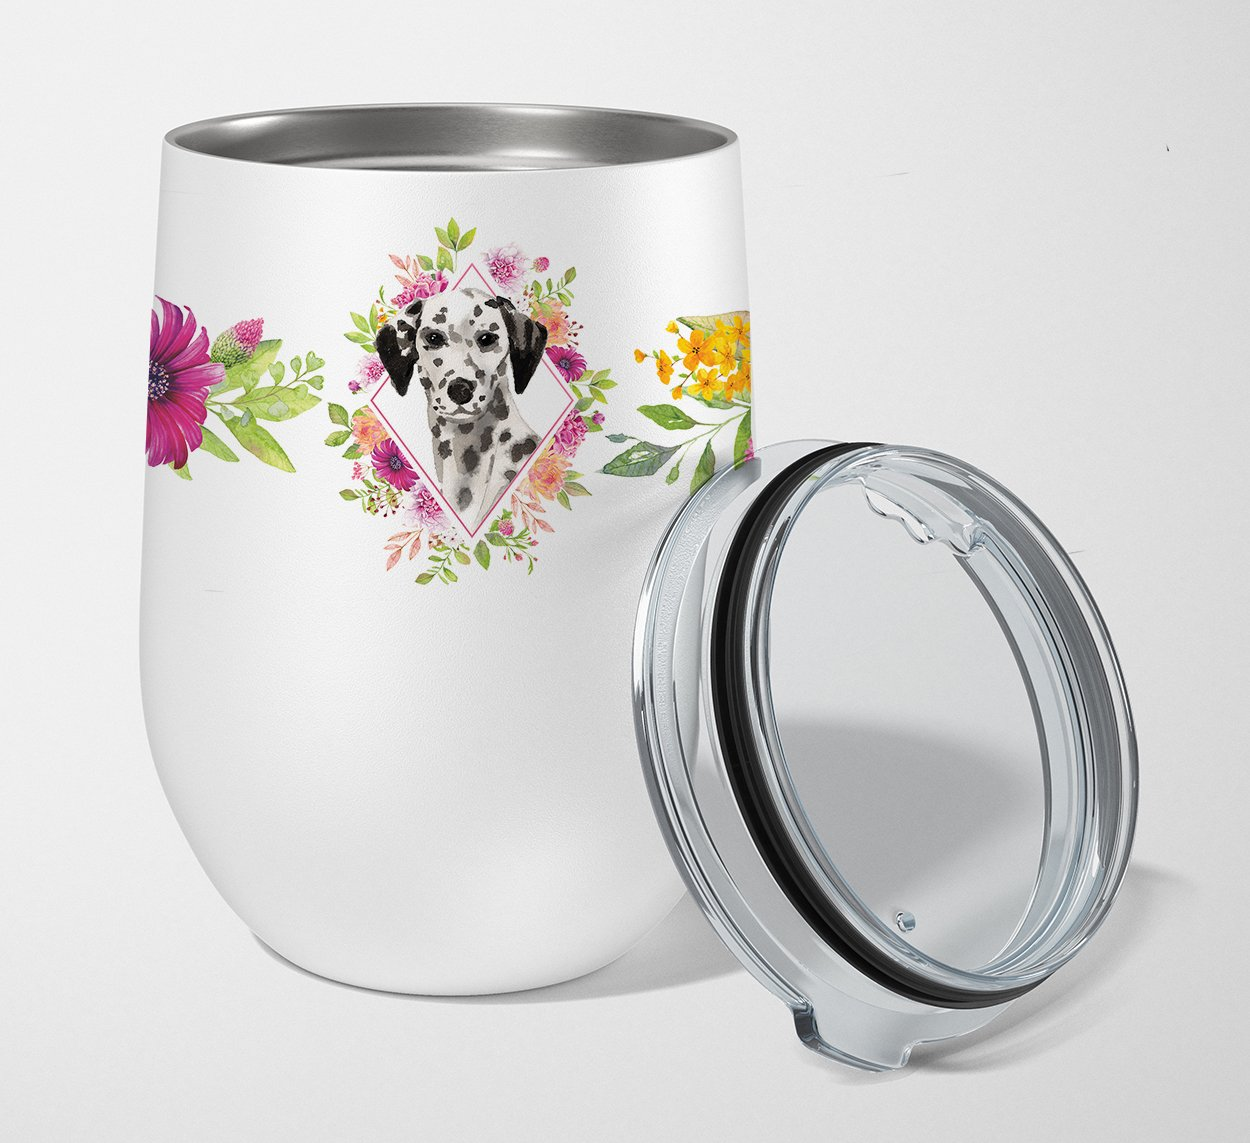 Dalmatian Pink Flowers Stainless Steel 12 oz Stemless Wine Glass CK4242TBL12 by Caroline's Treasures